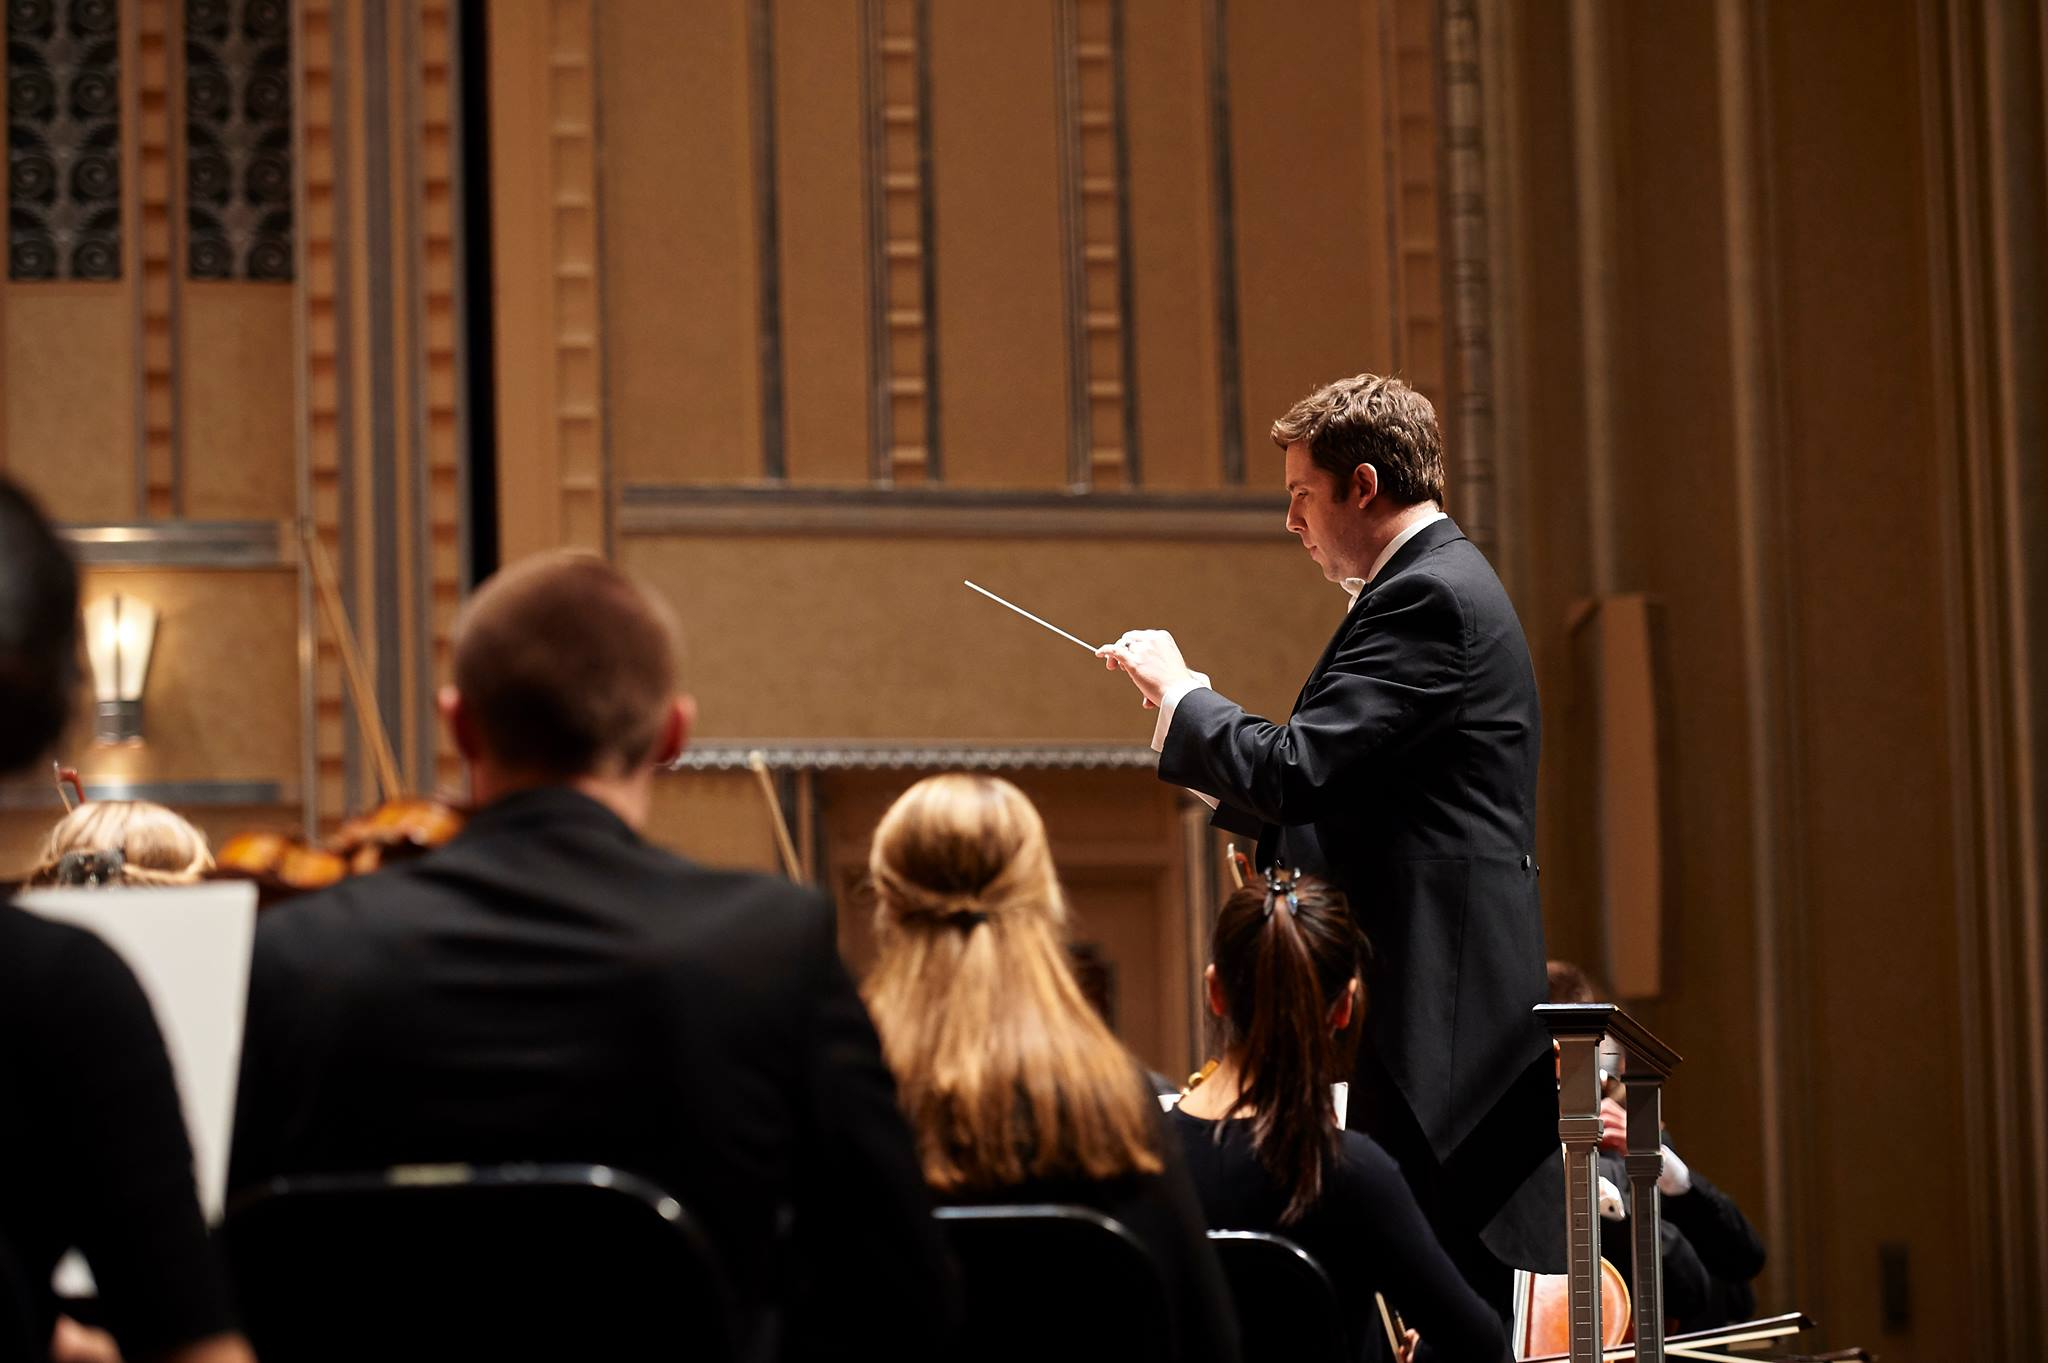 Brett Mitchell leads the Cleveland Orchestra Youth Orchestra in performance at Severance Hall. (Photo by Roger Mastroianni)